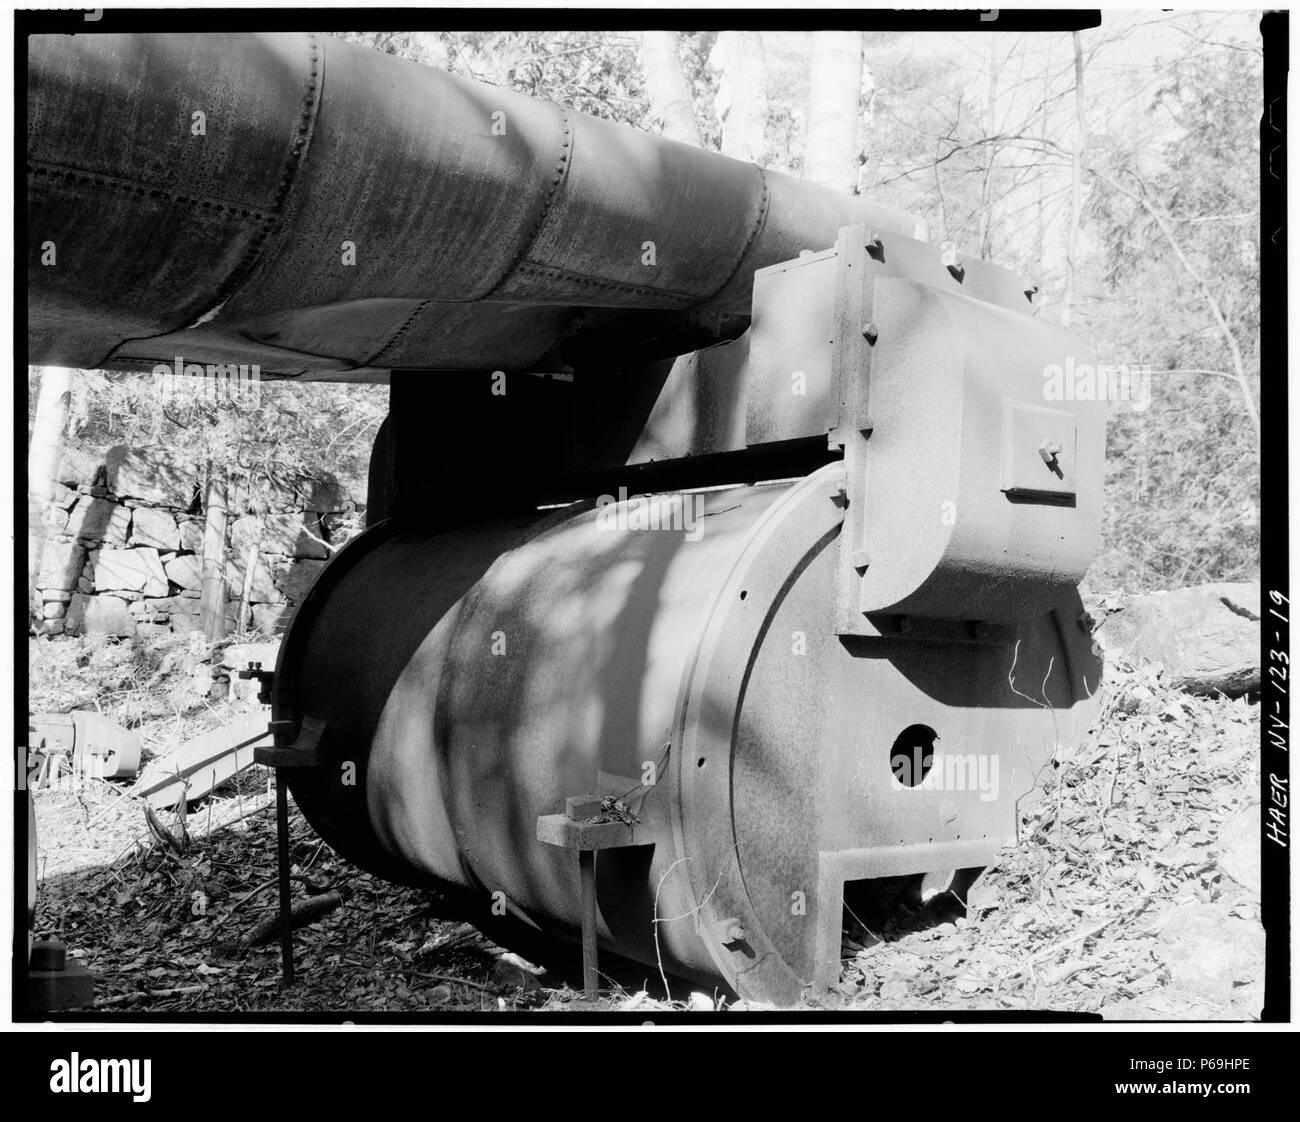 19. June, 1978. MCINTYRE IRON WORKS, DETAIL BLOWING ENGINE, FROM THE TAILRACE. - Adirondack Iron ^ Steel Company, New - LOC - hhh.ny0915.photos.116624p. - Stock Image